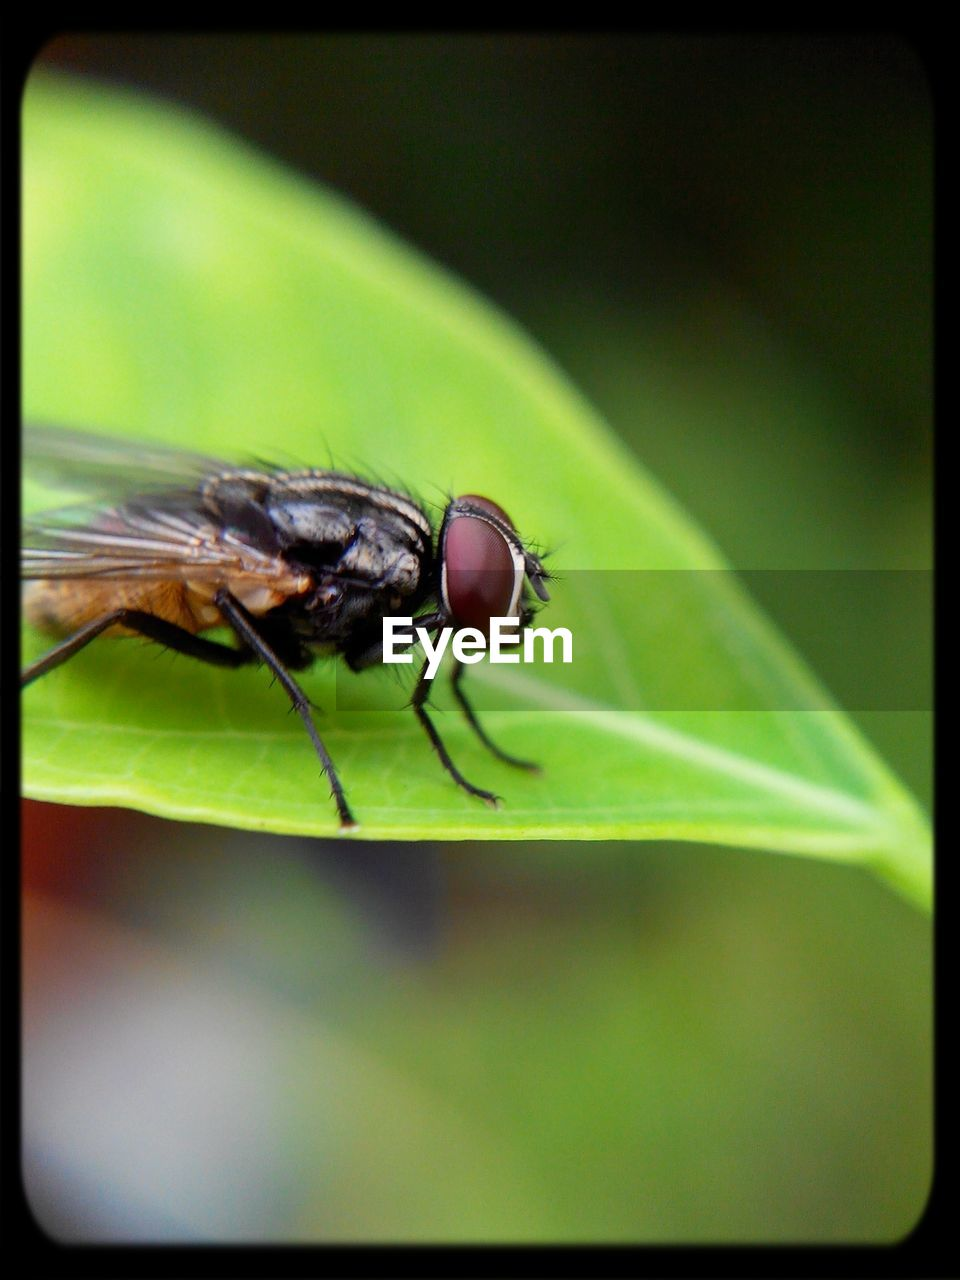 insect, one animal, animal themes, animals in the wild, leaf, green color, close-up, nature, outdoors, day, no people, plant